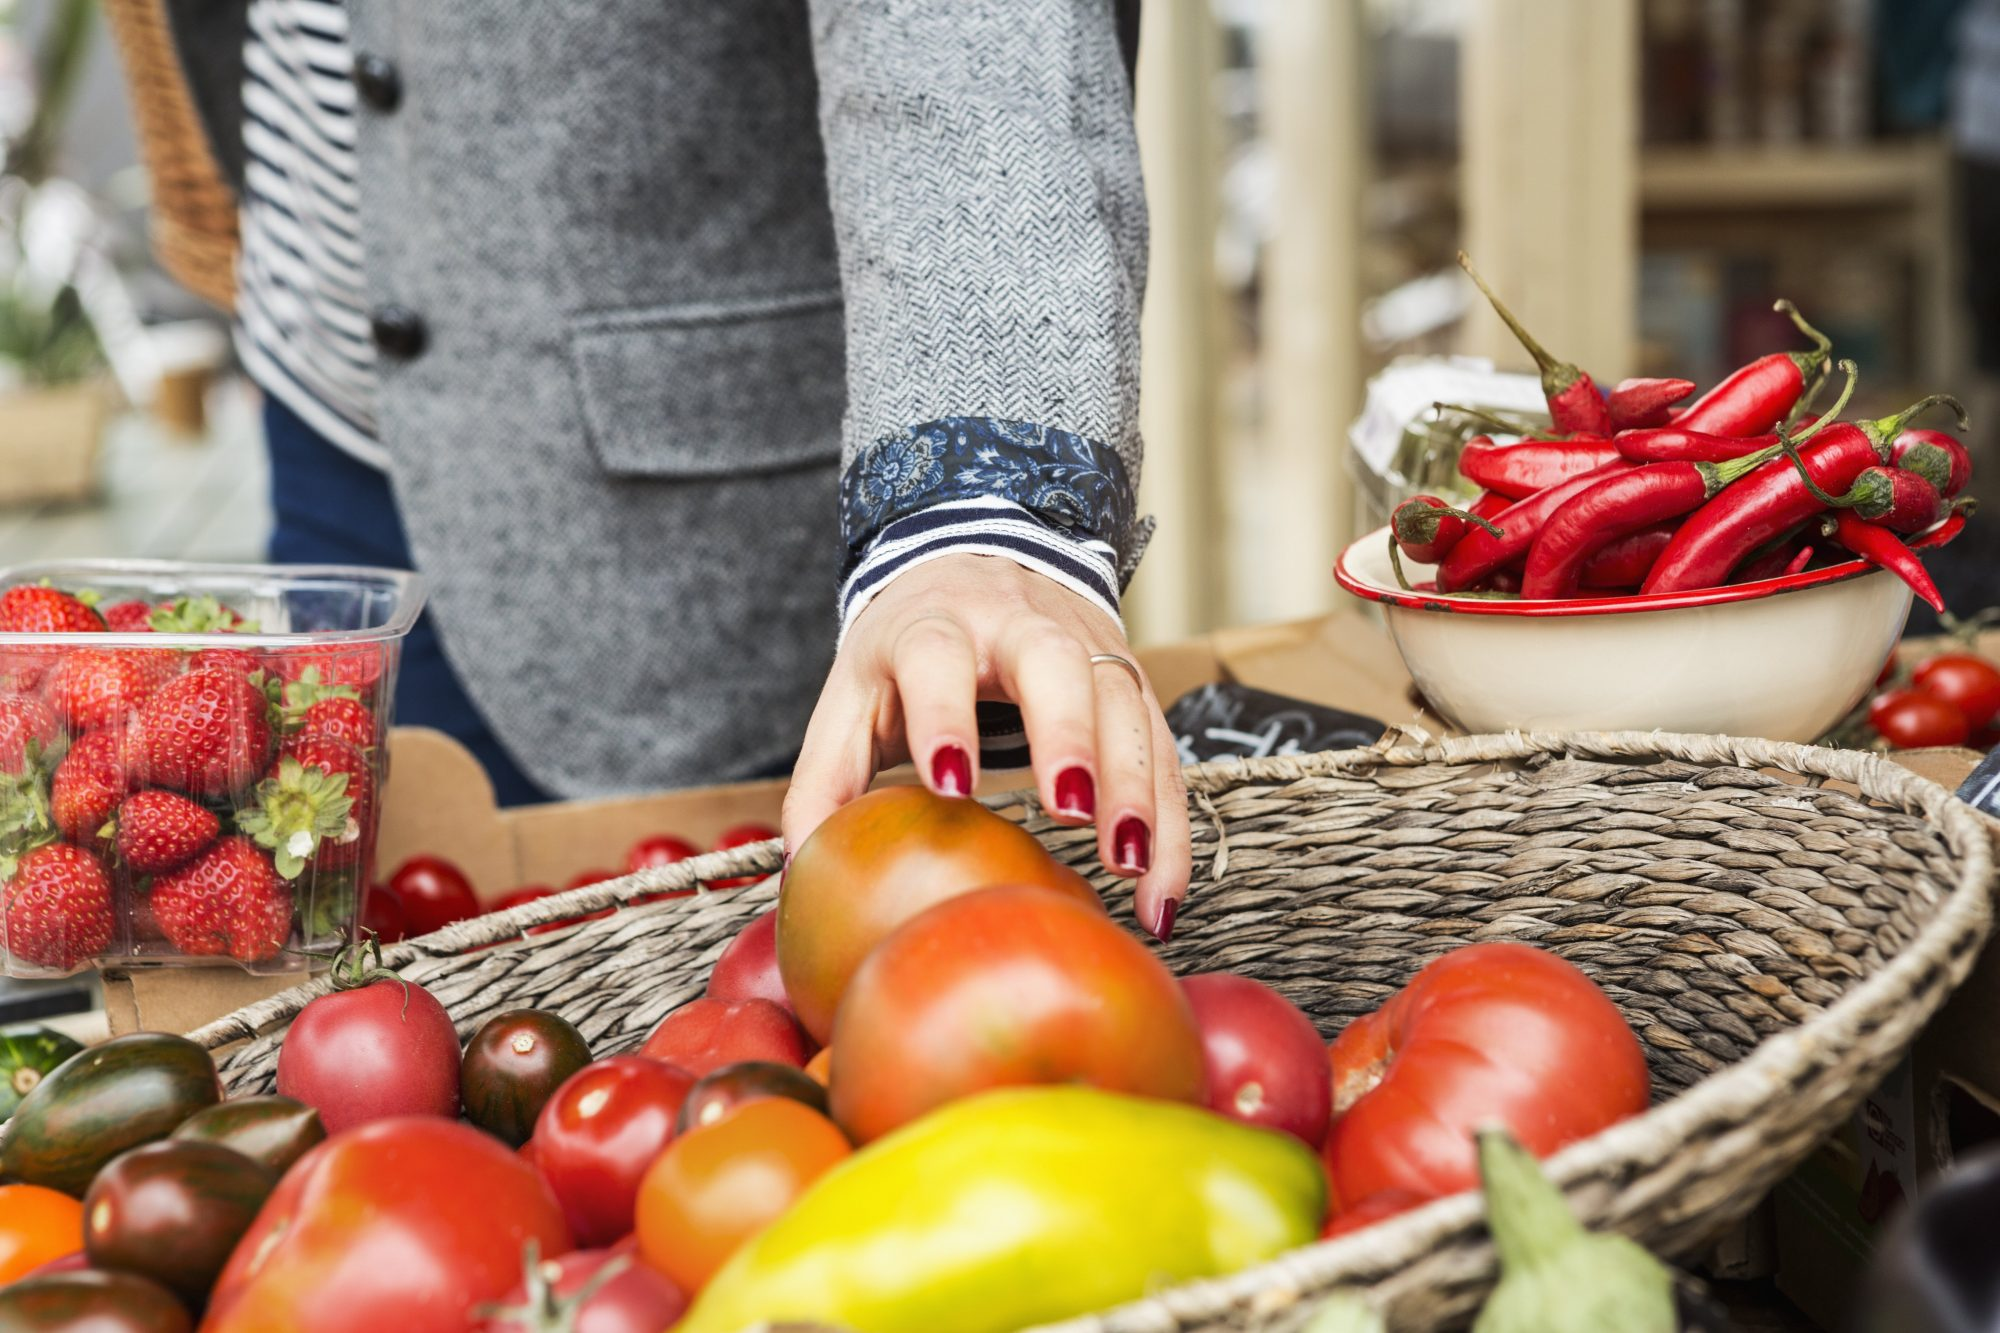 When to Splurge Vs. Save at the Farmer's Market